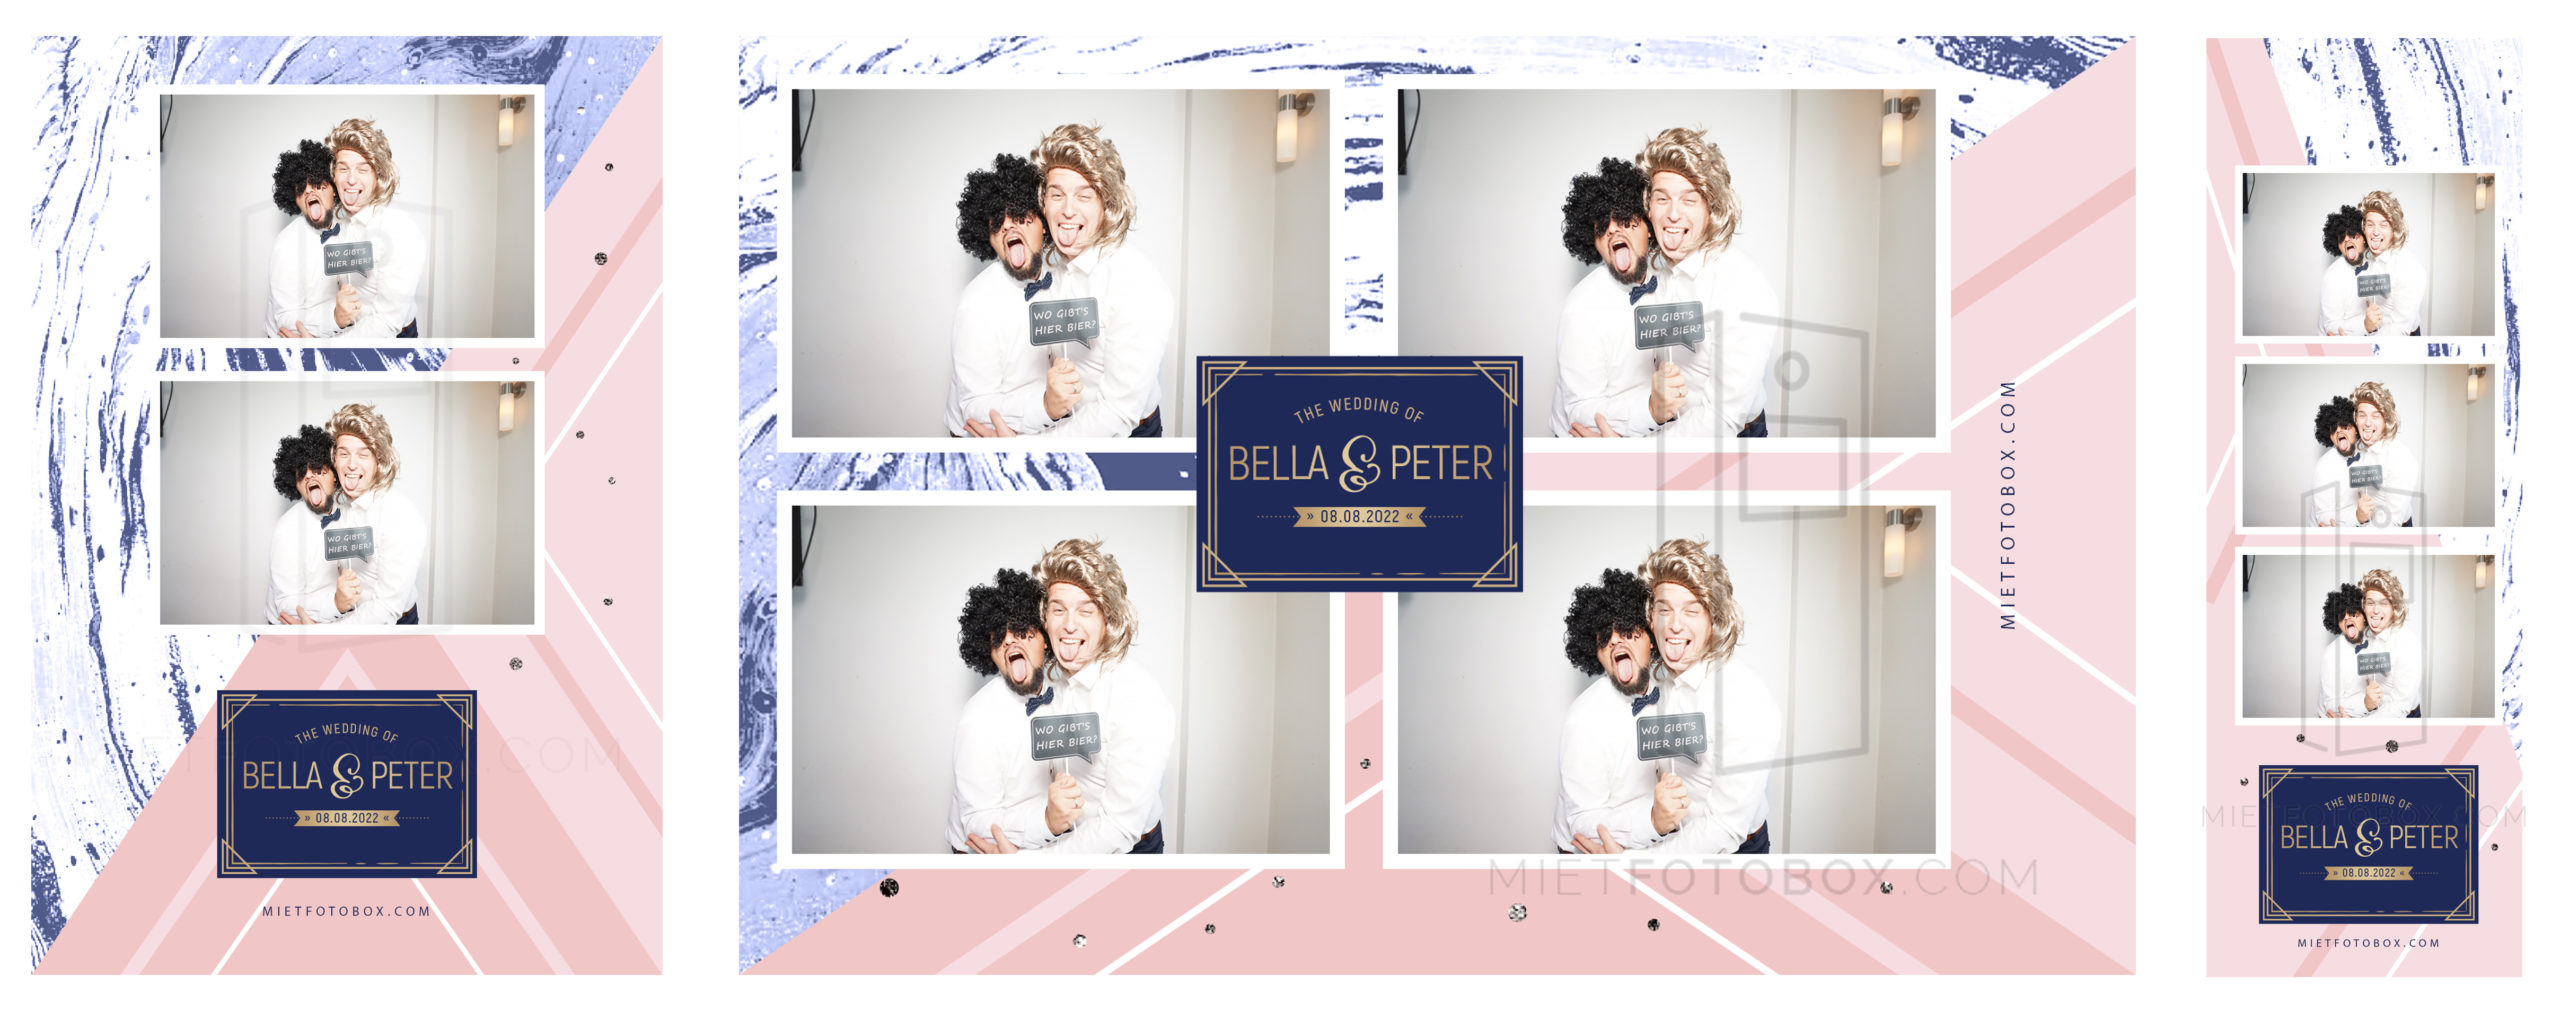 Fotobox-Layout-014